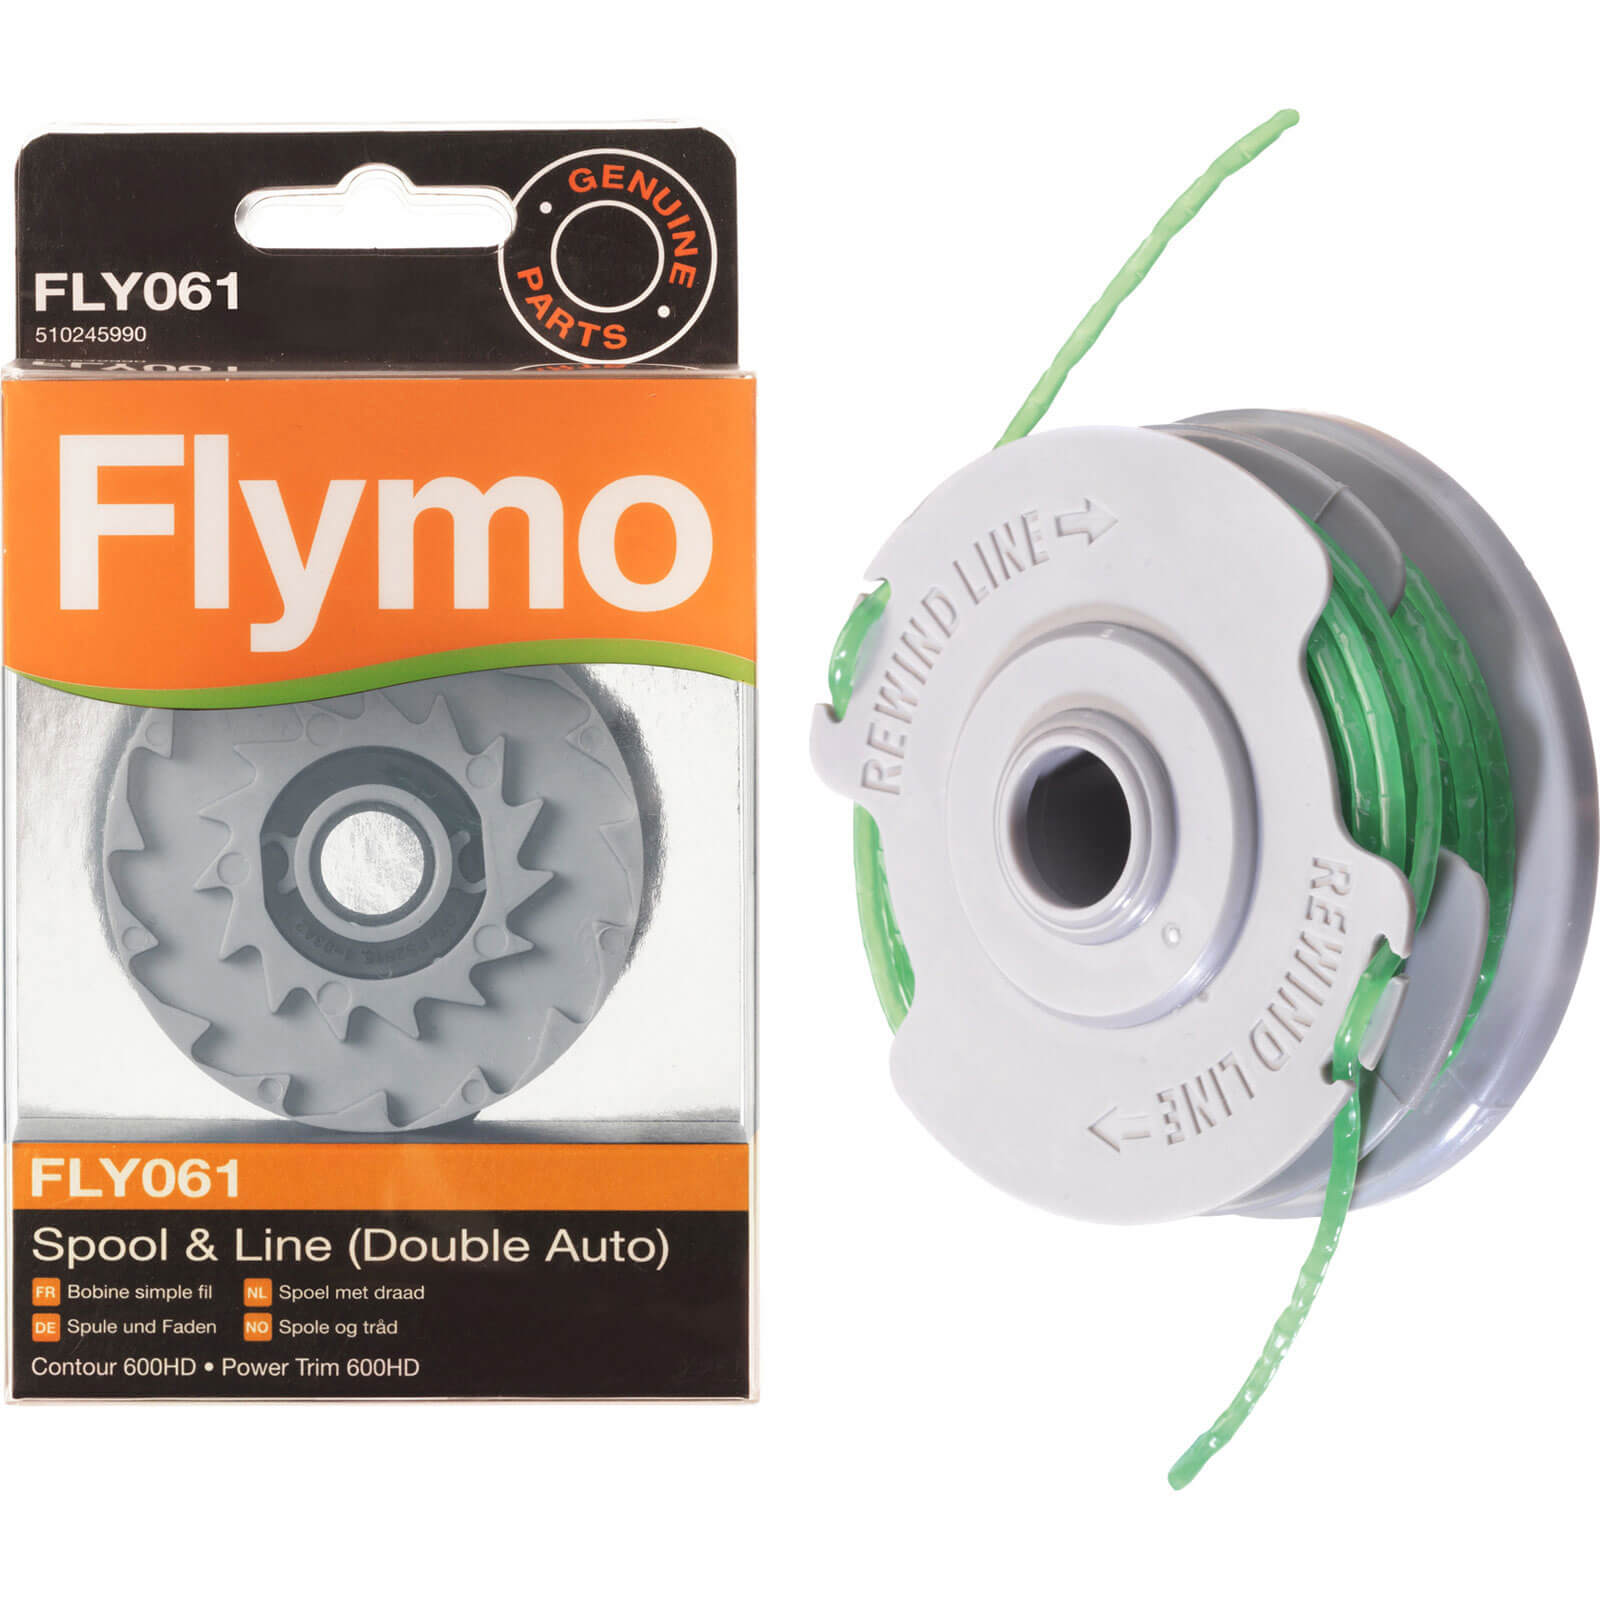 Flymo FLY061 Replacement Spool & Line for Powertrim & Contour 600HD Grass Trimmers